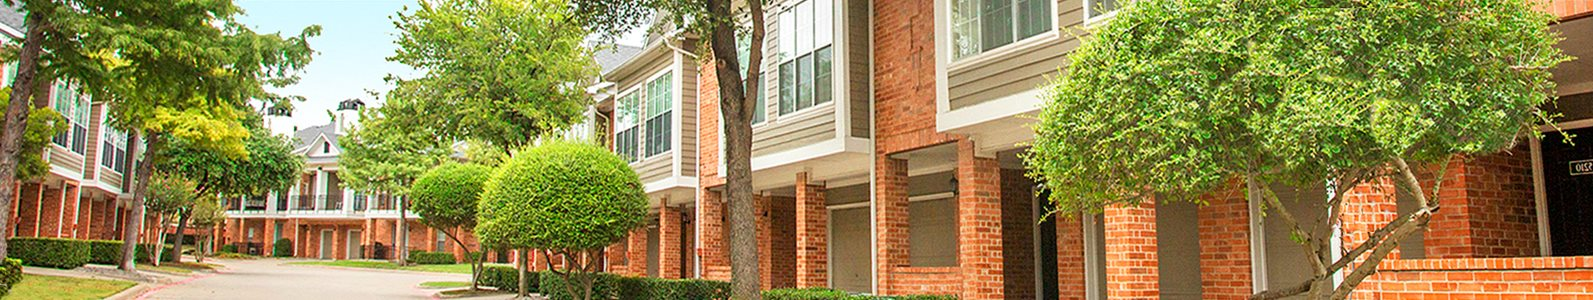 Retreat at Spring Park in Garland features a pool, fitness center, and apartments with fully equipped kitchens